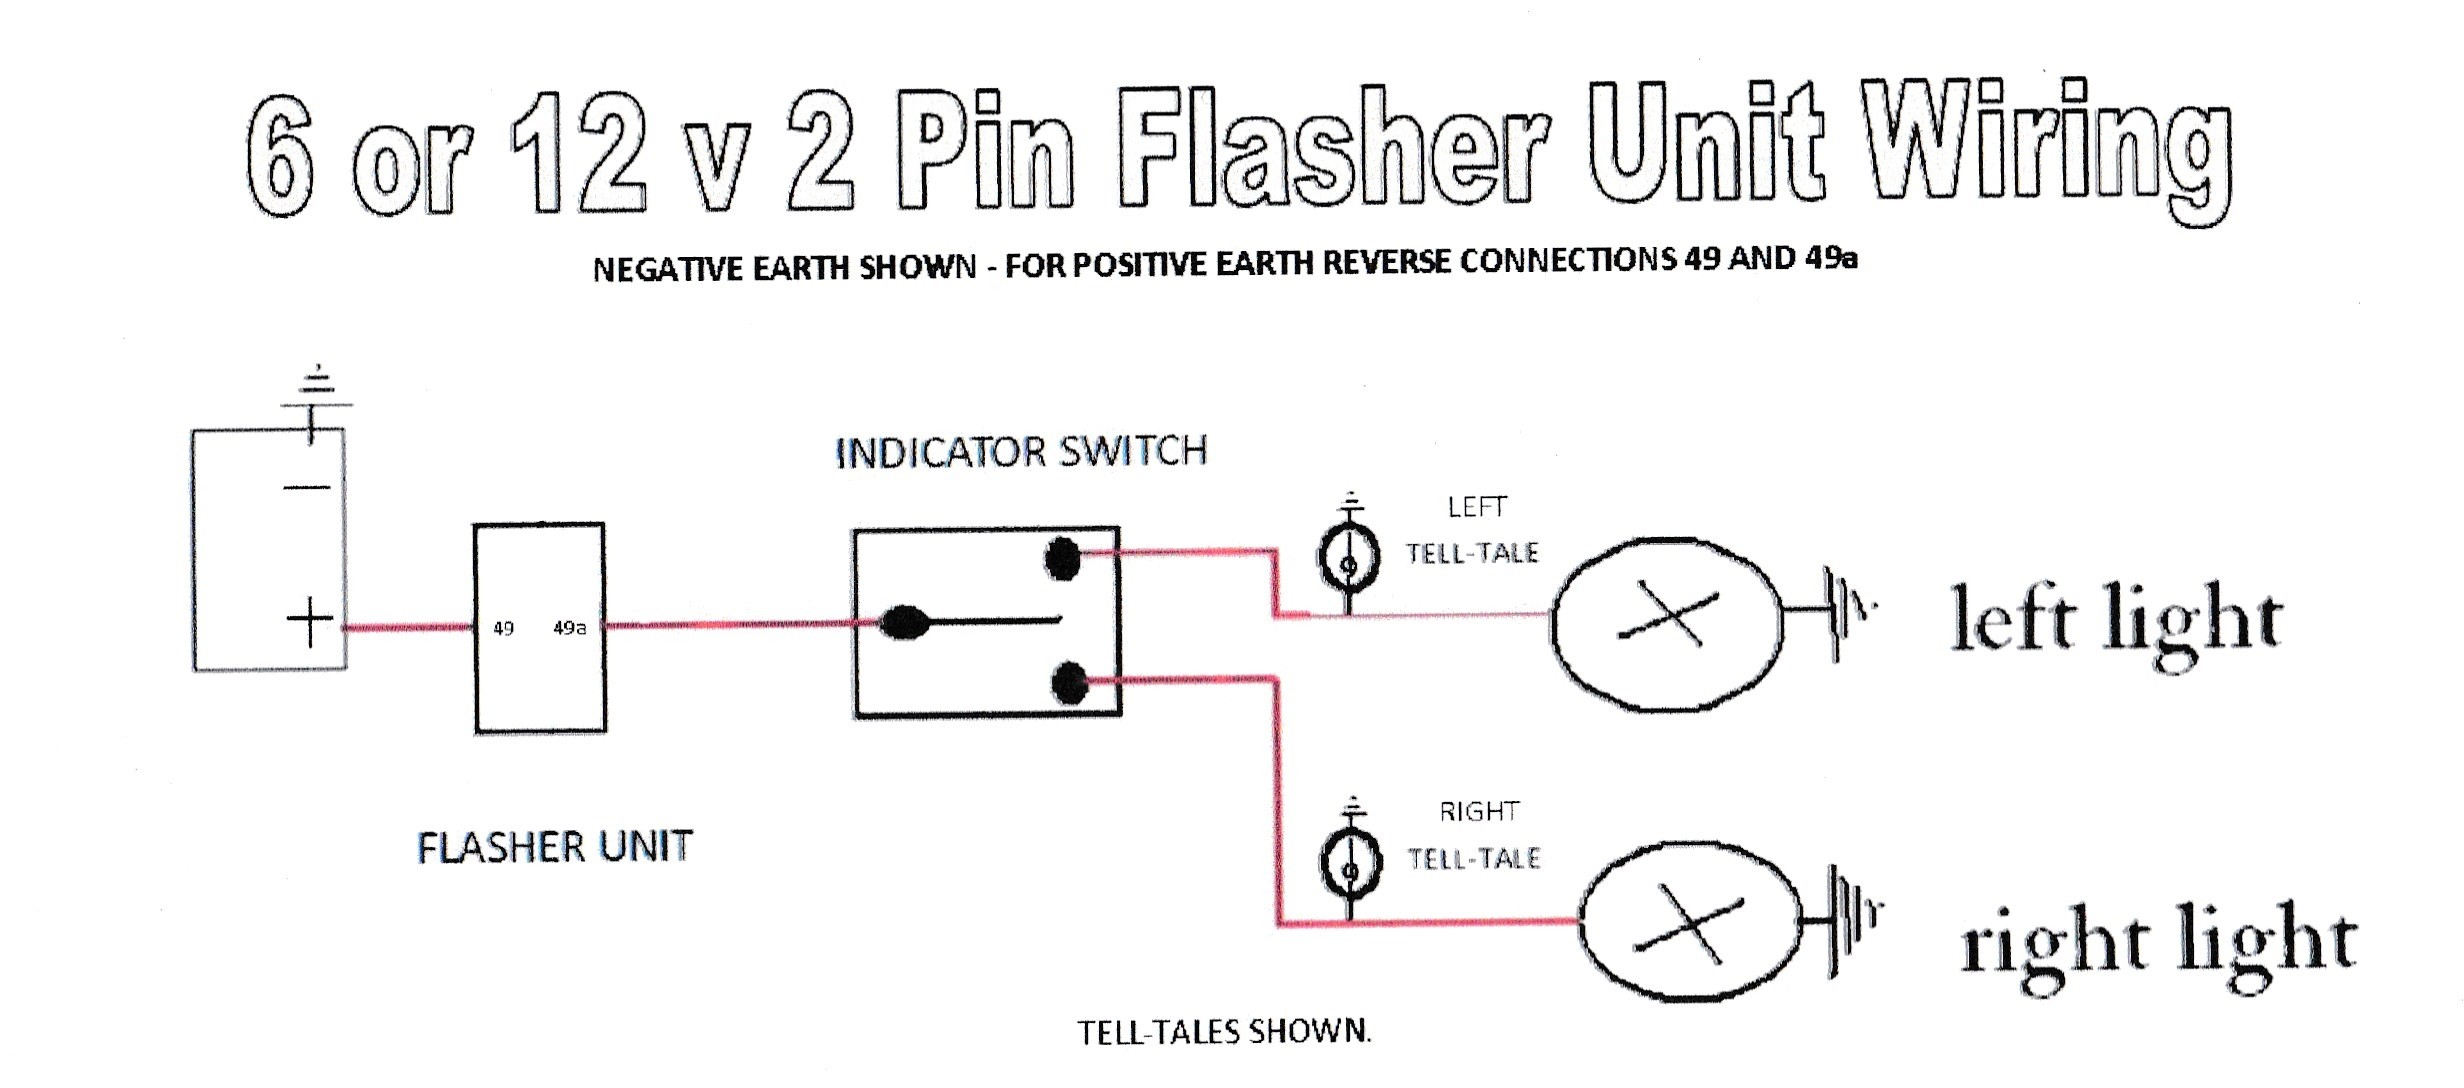 led relay wiring diagram auto electrical wiring diagram \u2022 led tail light wiring diagram flasher relay wiring diagram pin flasher relay wiring diagram rh detoxicrecenze com 3 pin led flasher relay wiring diagram led flasher relay wiring diagram